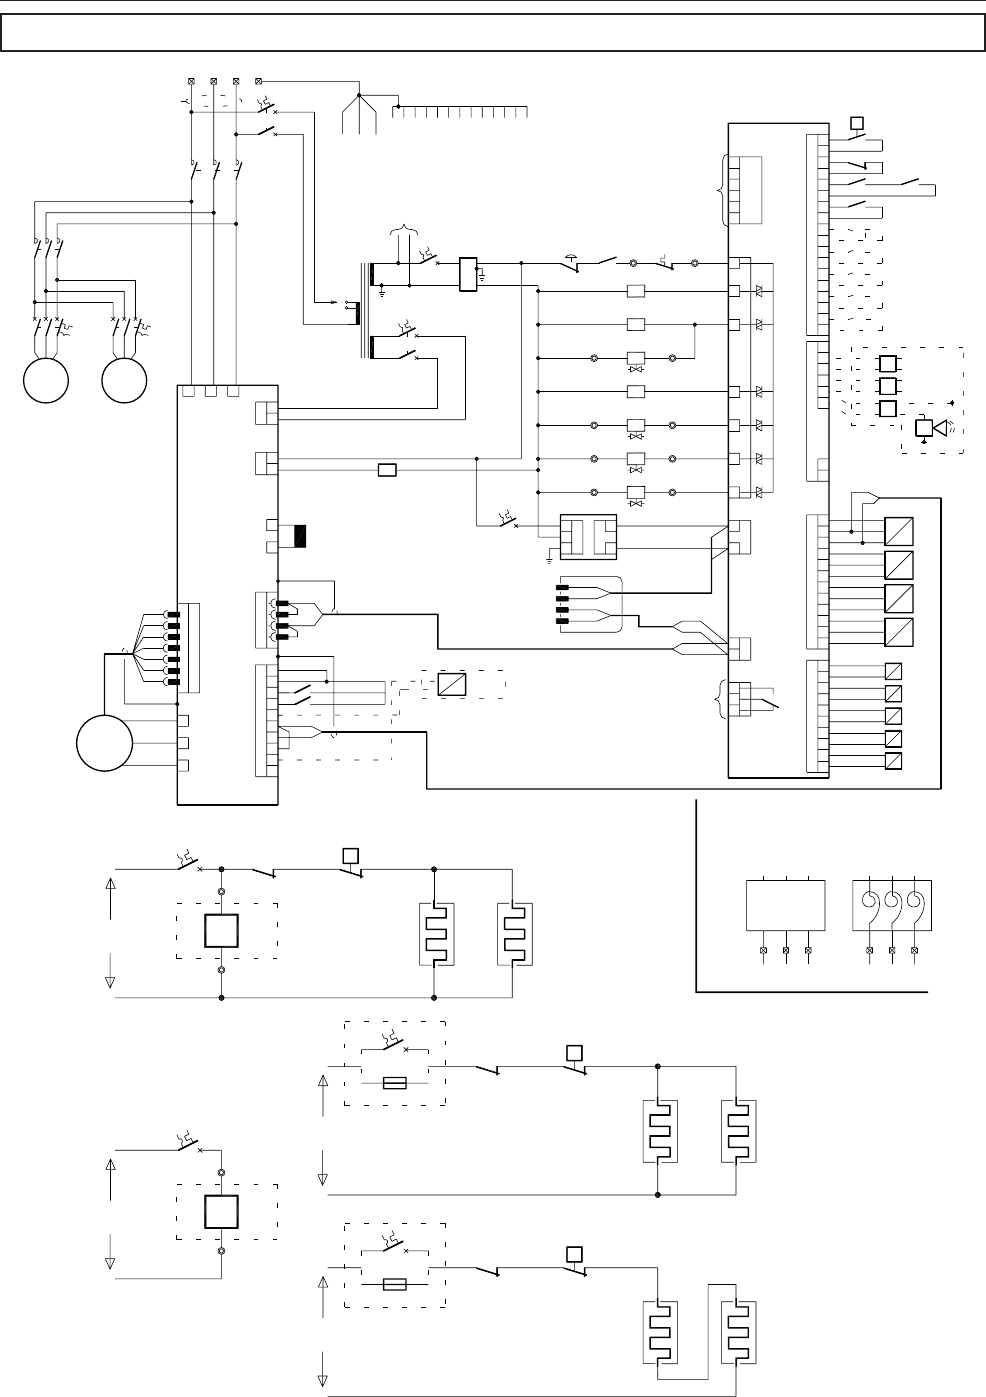 Wiring Diagram For Ingersoll Rand Air Compressors : 49